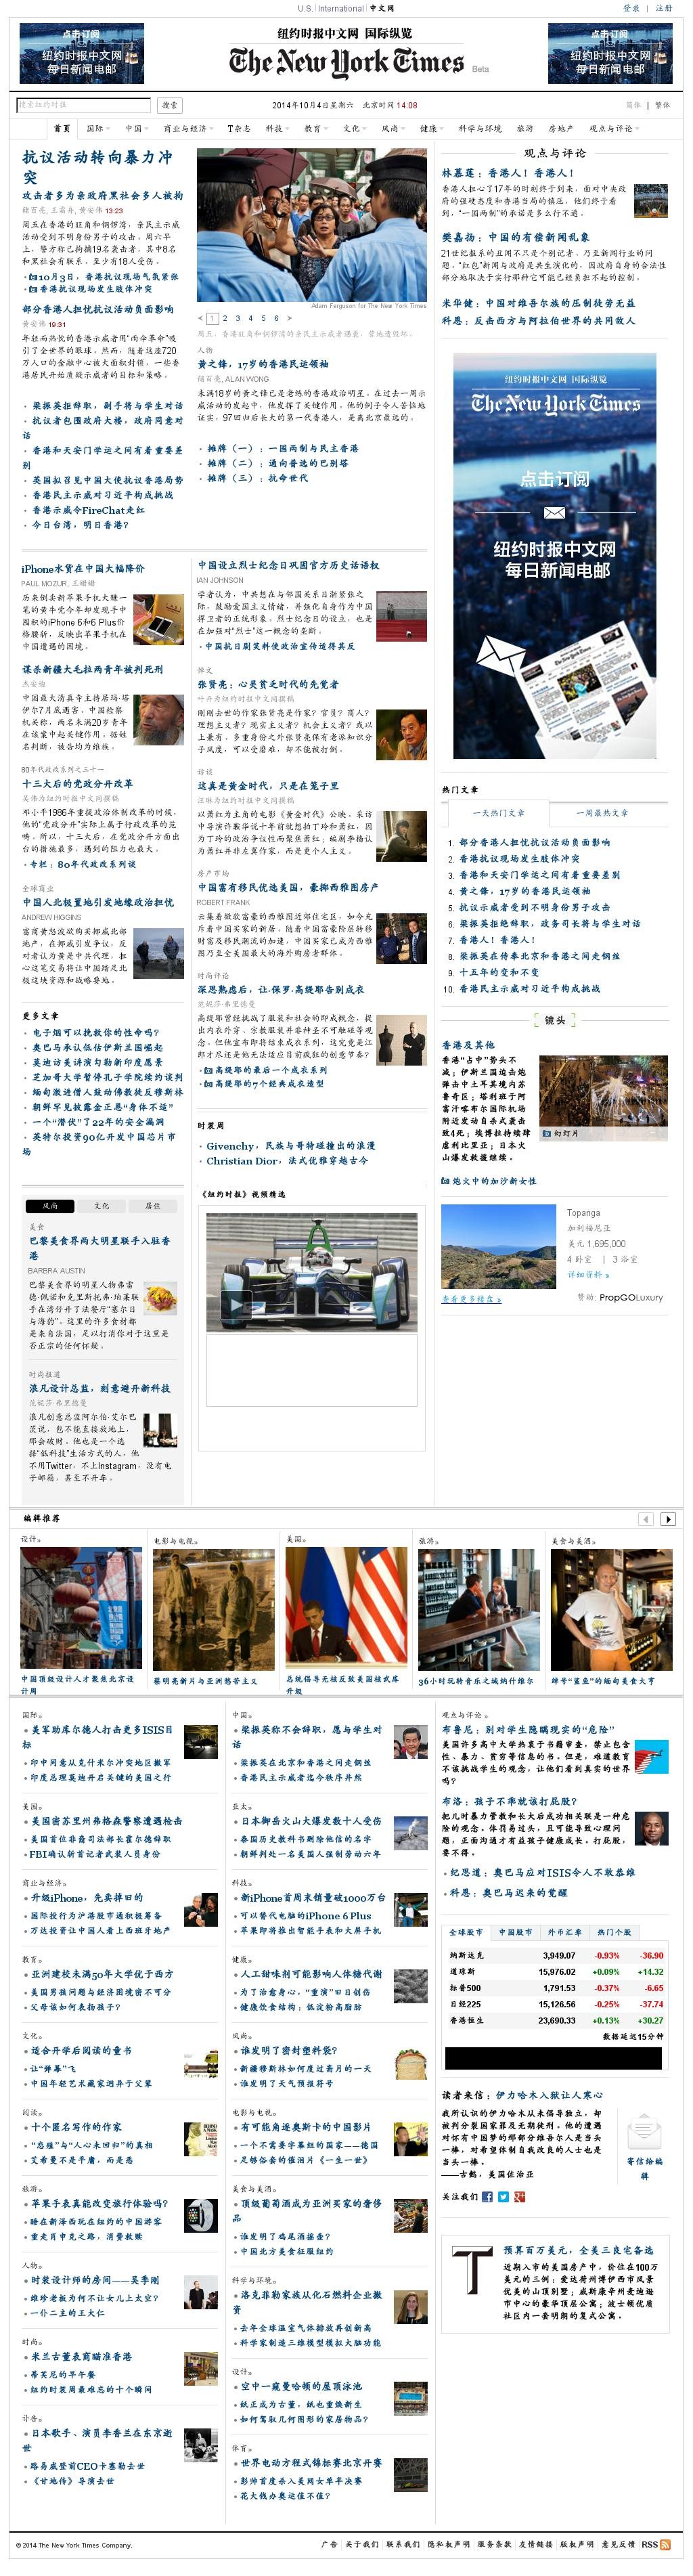 The New York Times (Chinese) at Saturday Oct. 4, 2014, 9:12 a.m. UTC